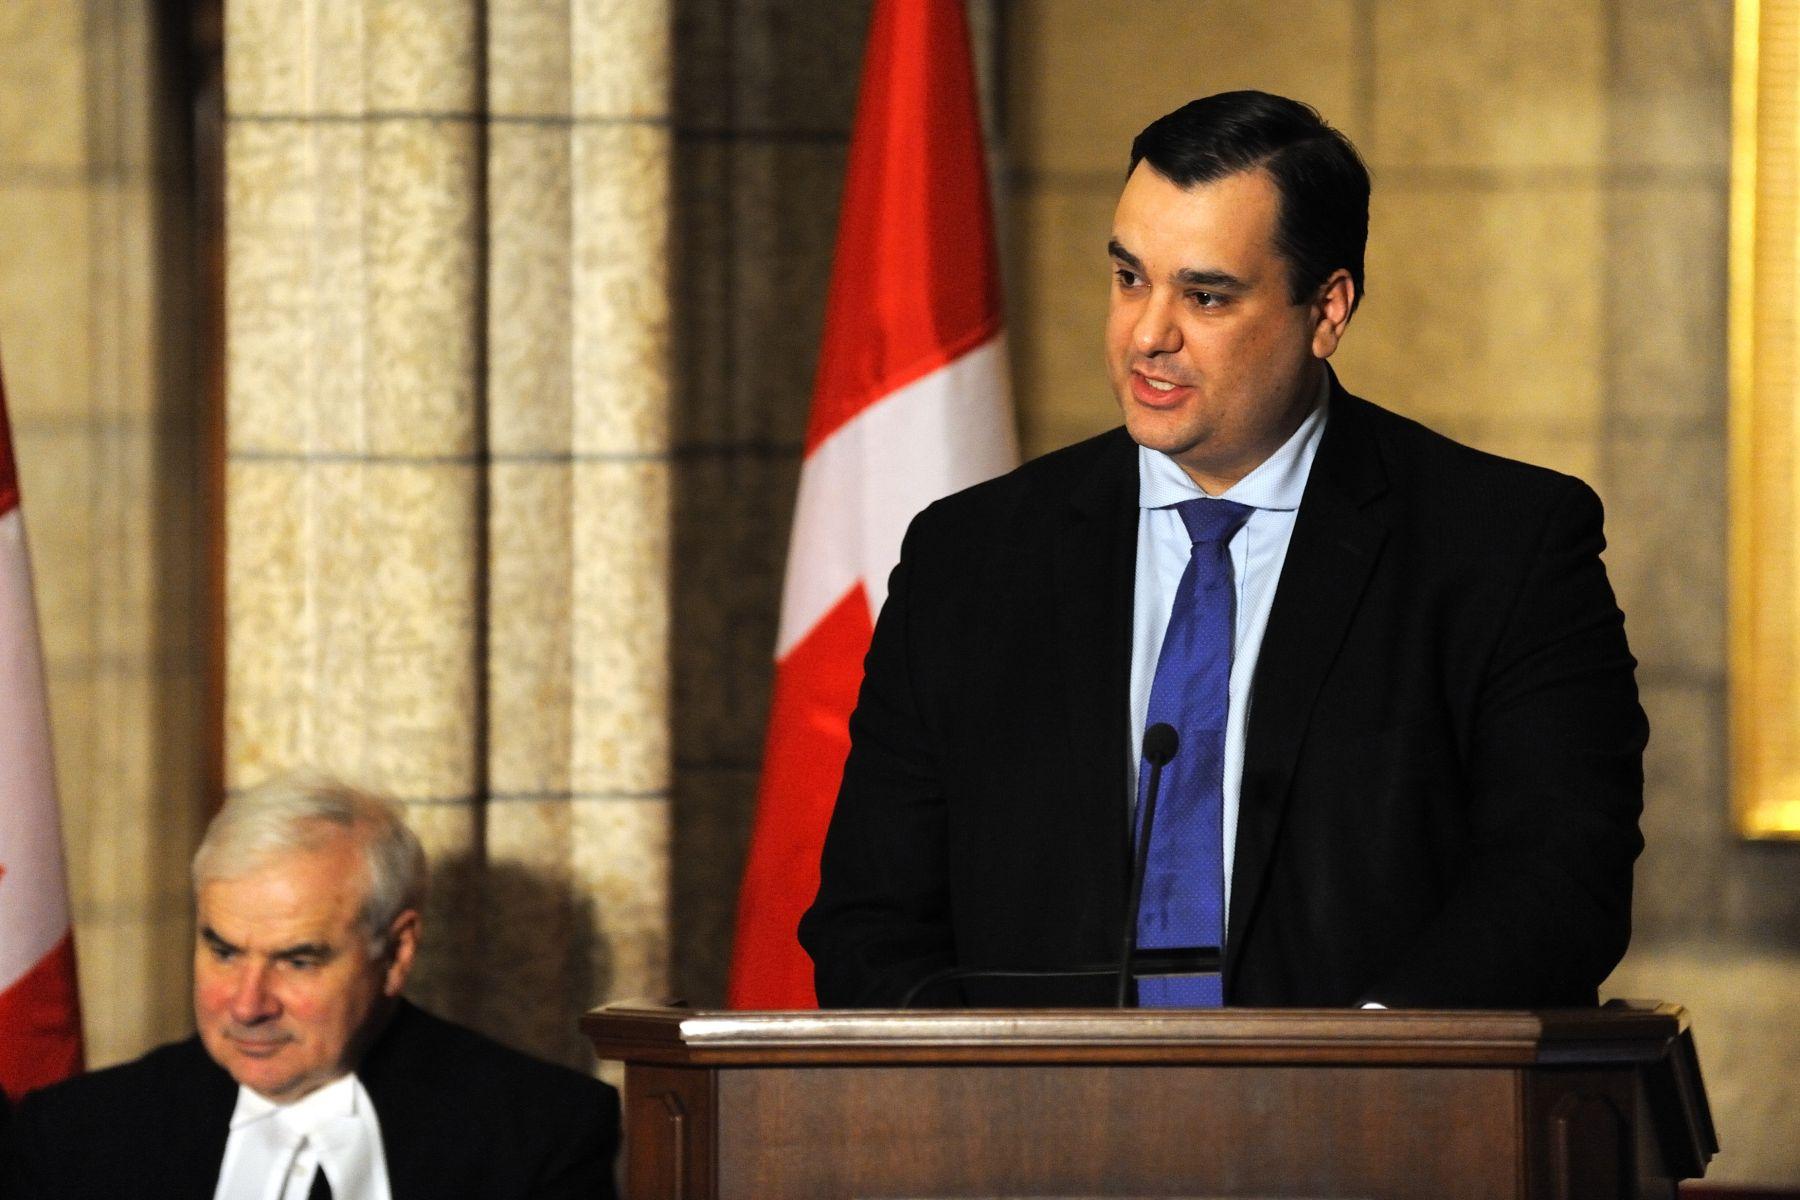 Canadian Heritage and Official Languages Minister James Moore also said a few words.